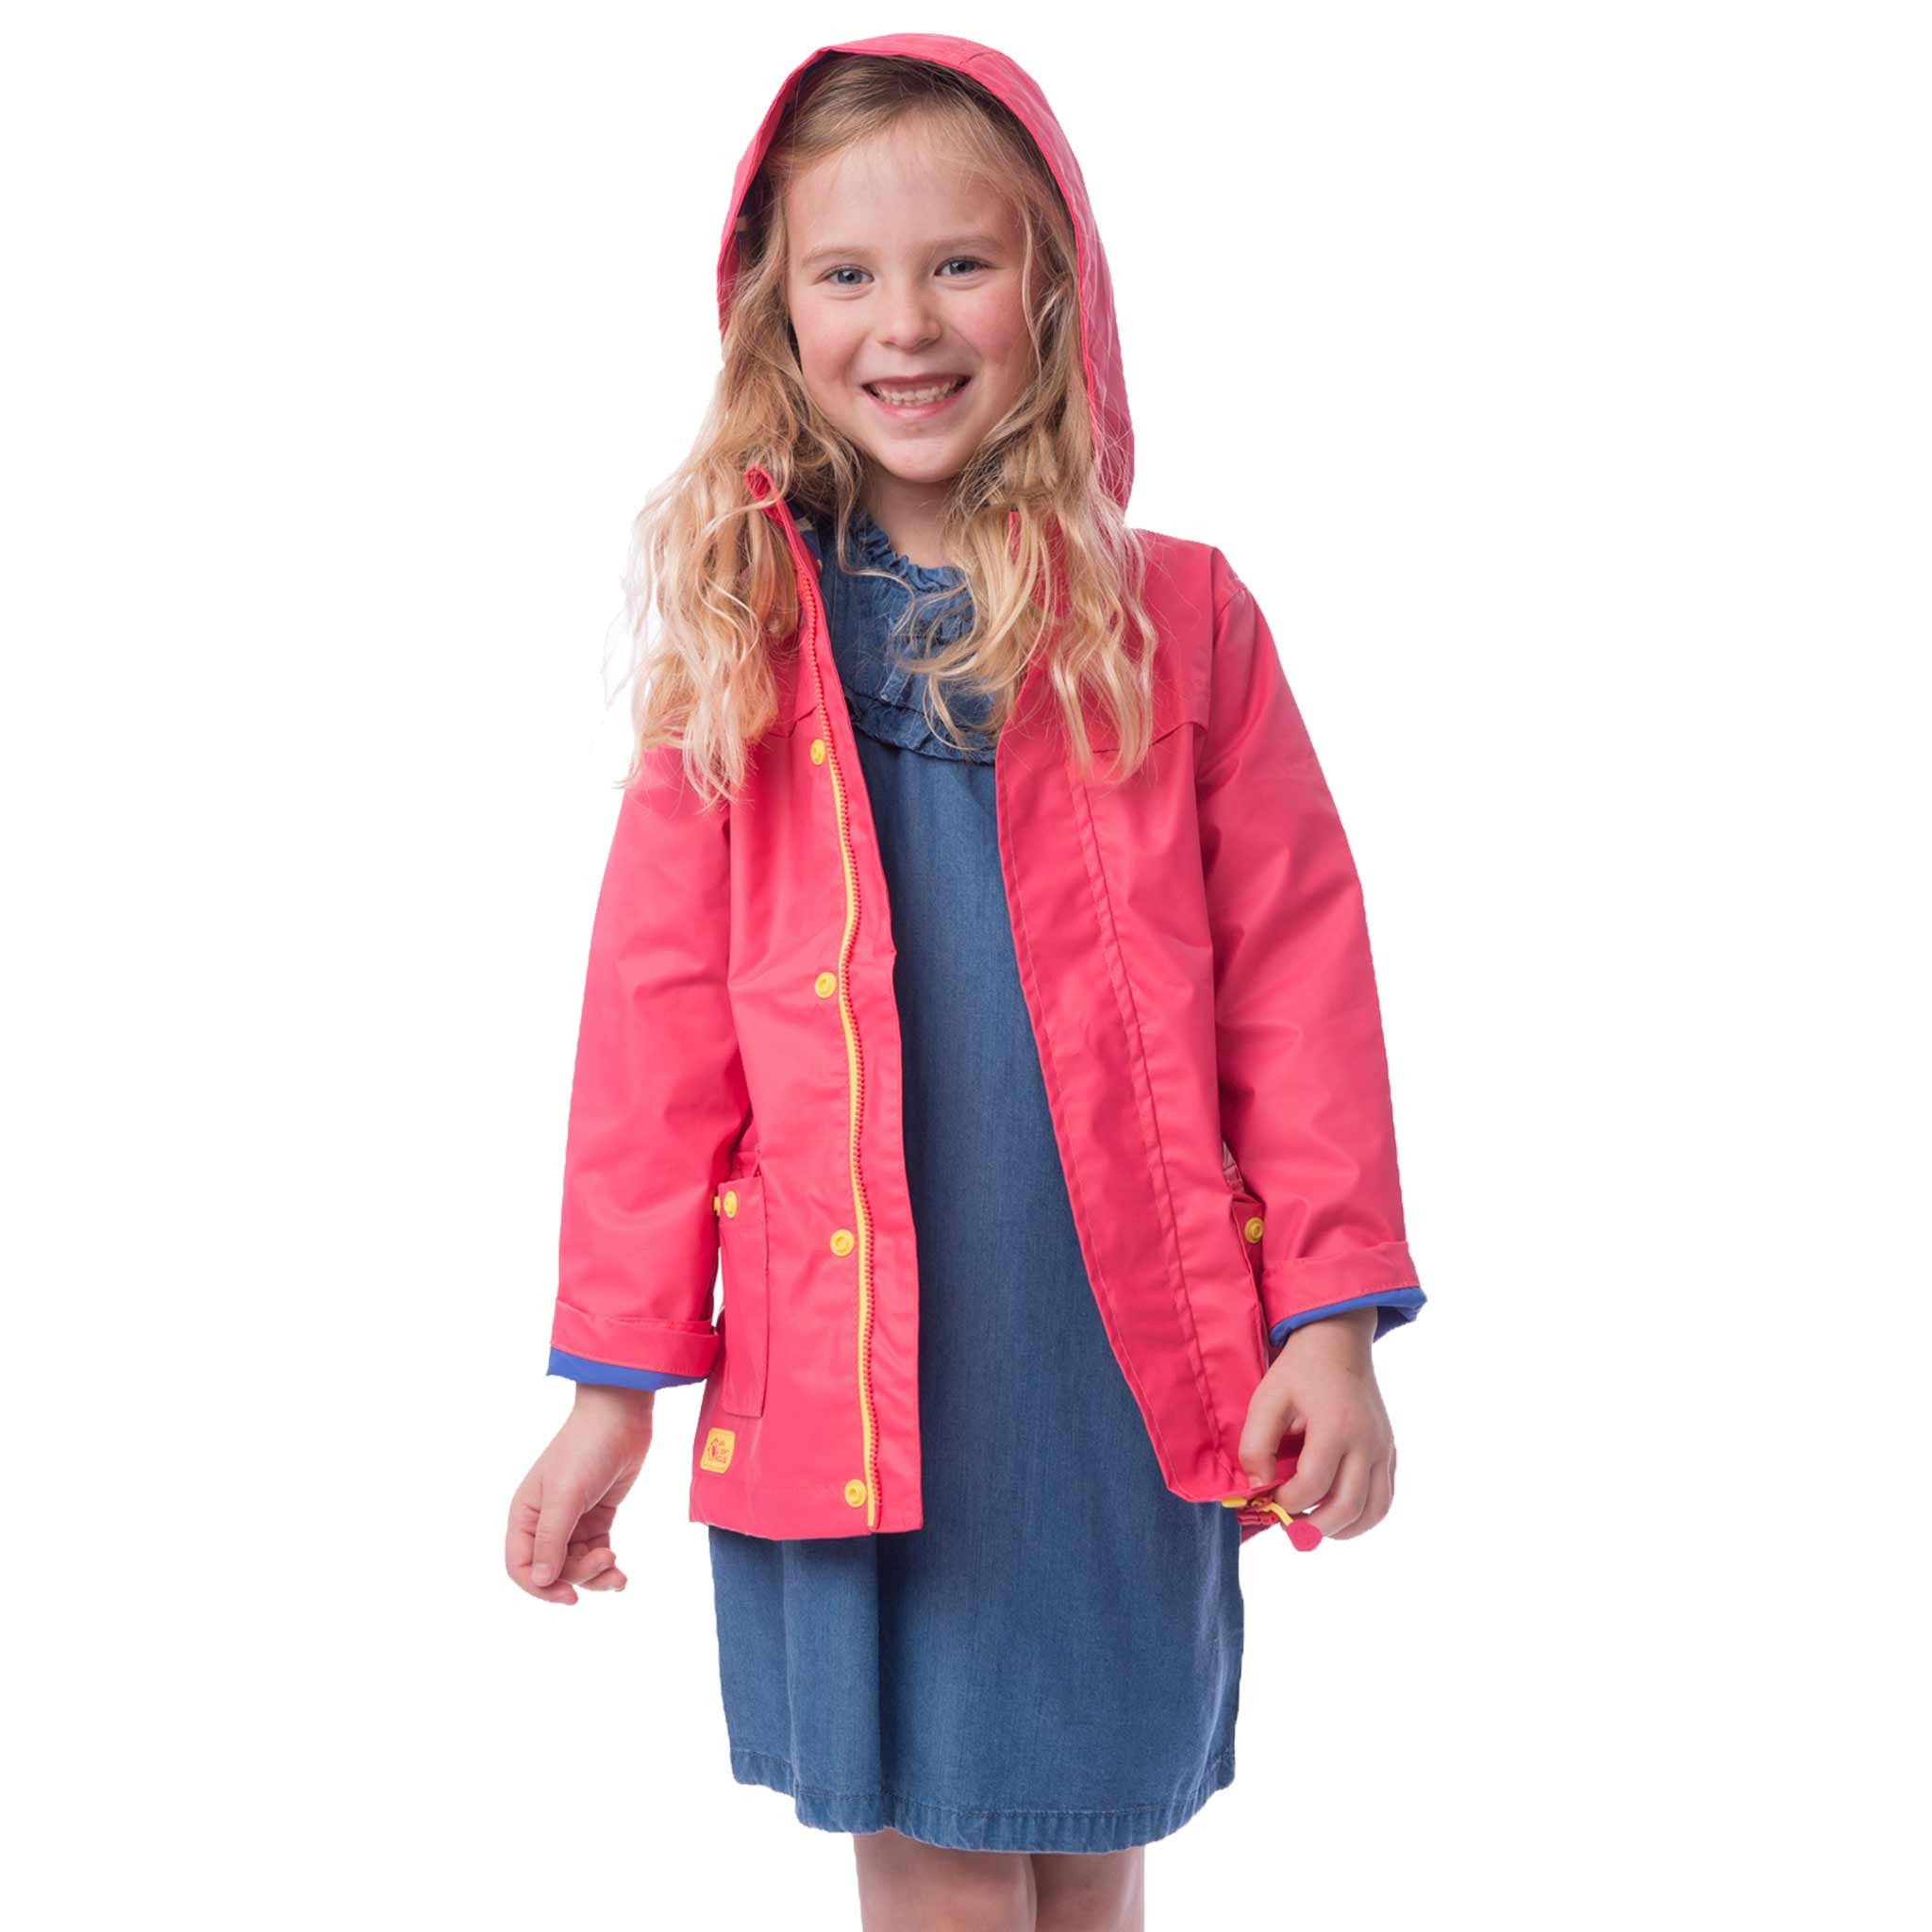 Lighthouse Phoebe Girls Waterproof Coat in Pink